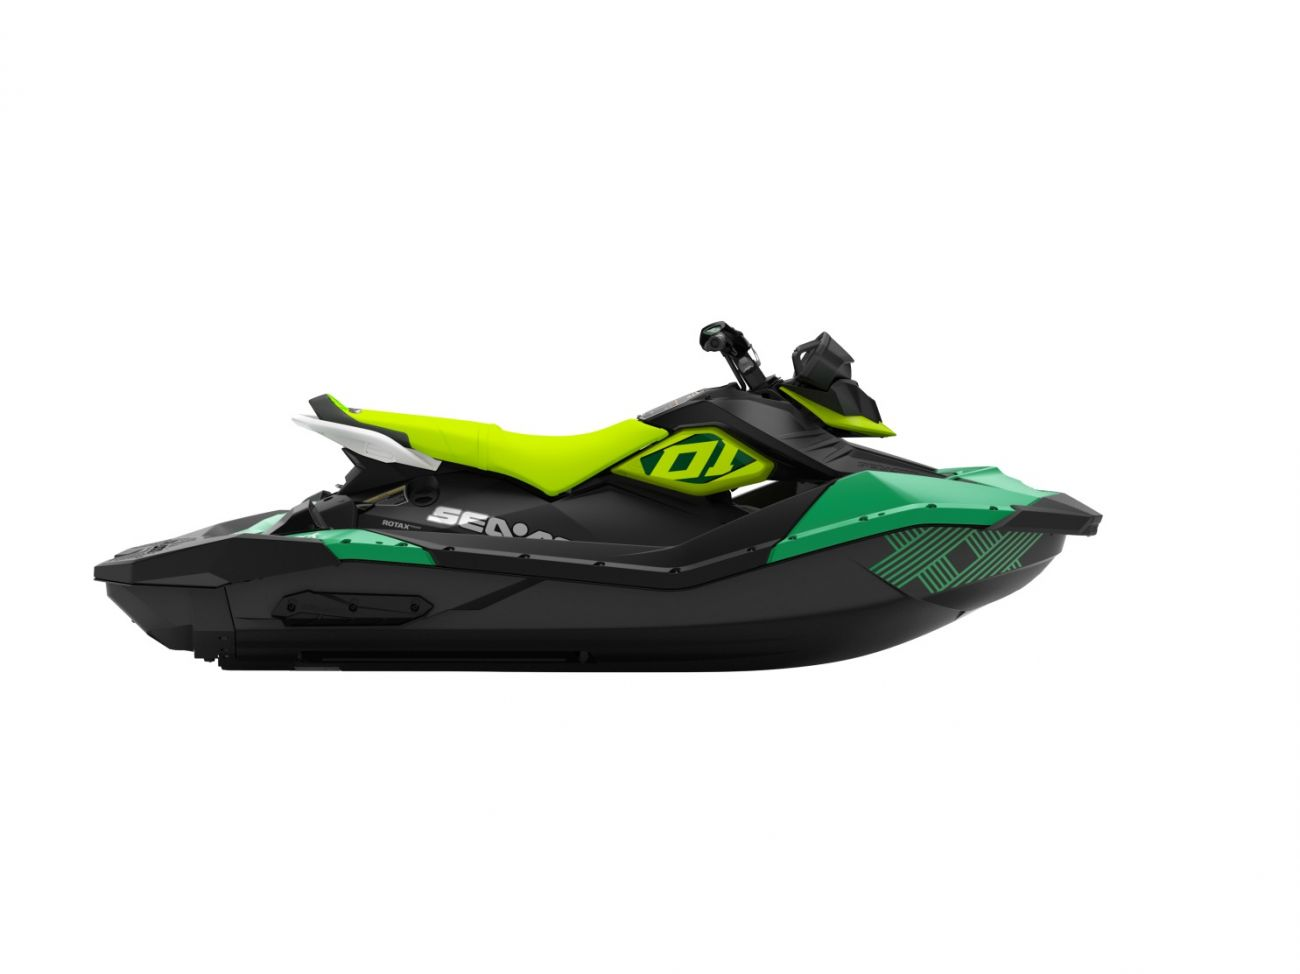 WATERSPORTS SEA-DOO_IMAGERY REC_LITE MY21 SEA_MY21_RECLT_Spark_Trixx_90__180920142251_lowres